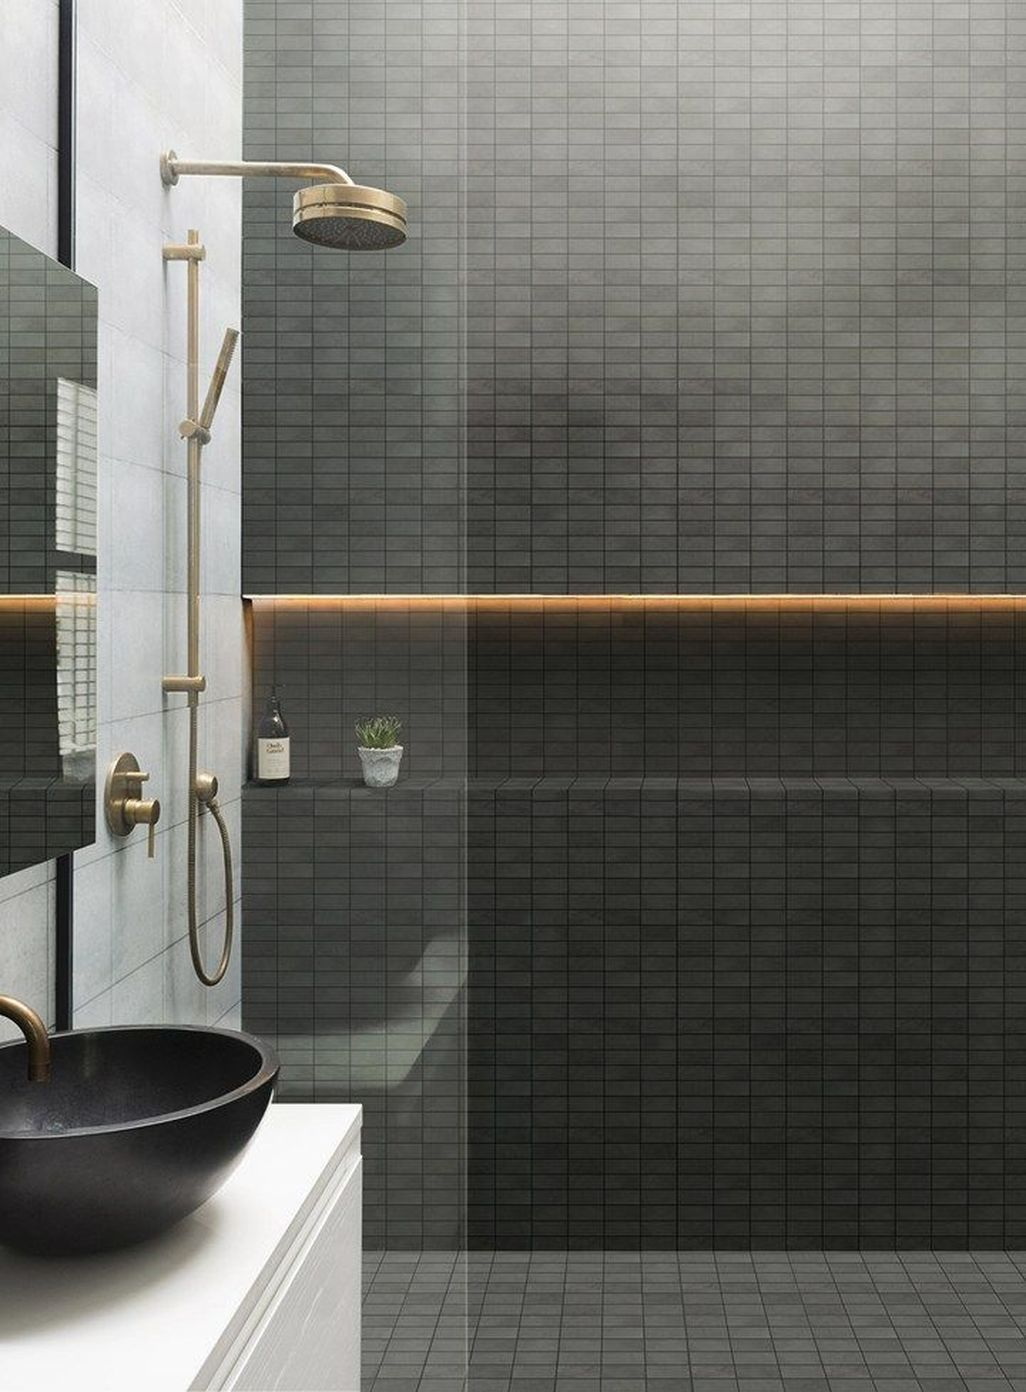 15 Best Tile Shower Design Ideas For Your Bathroom Bathroom